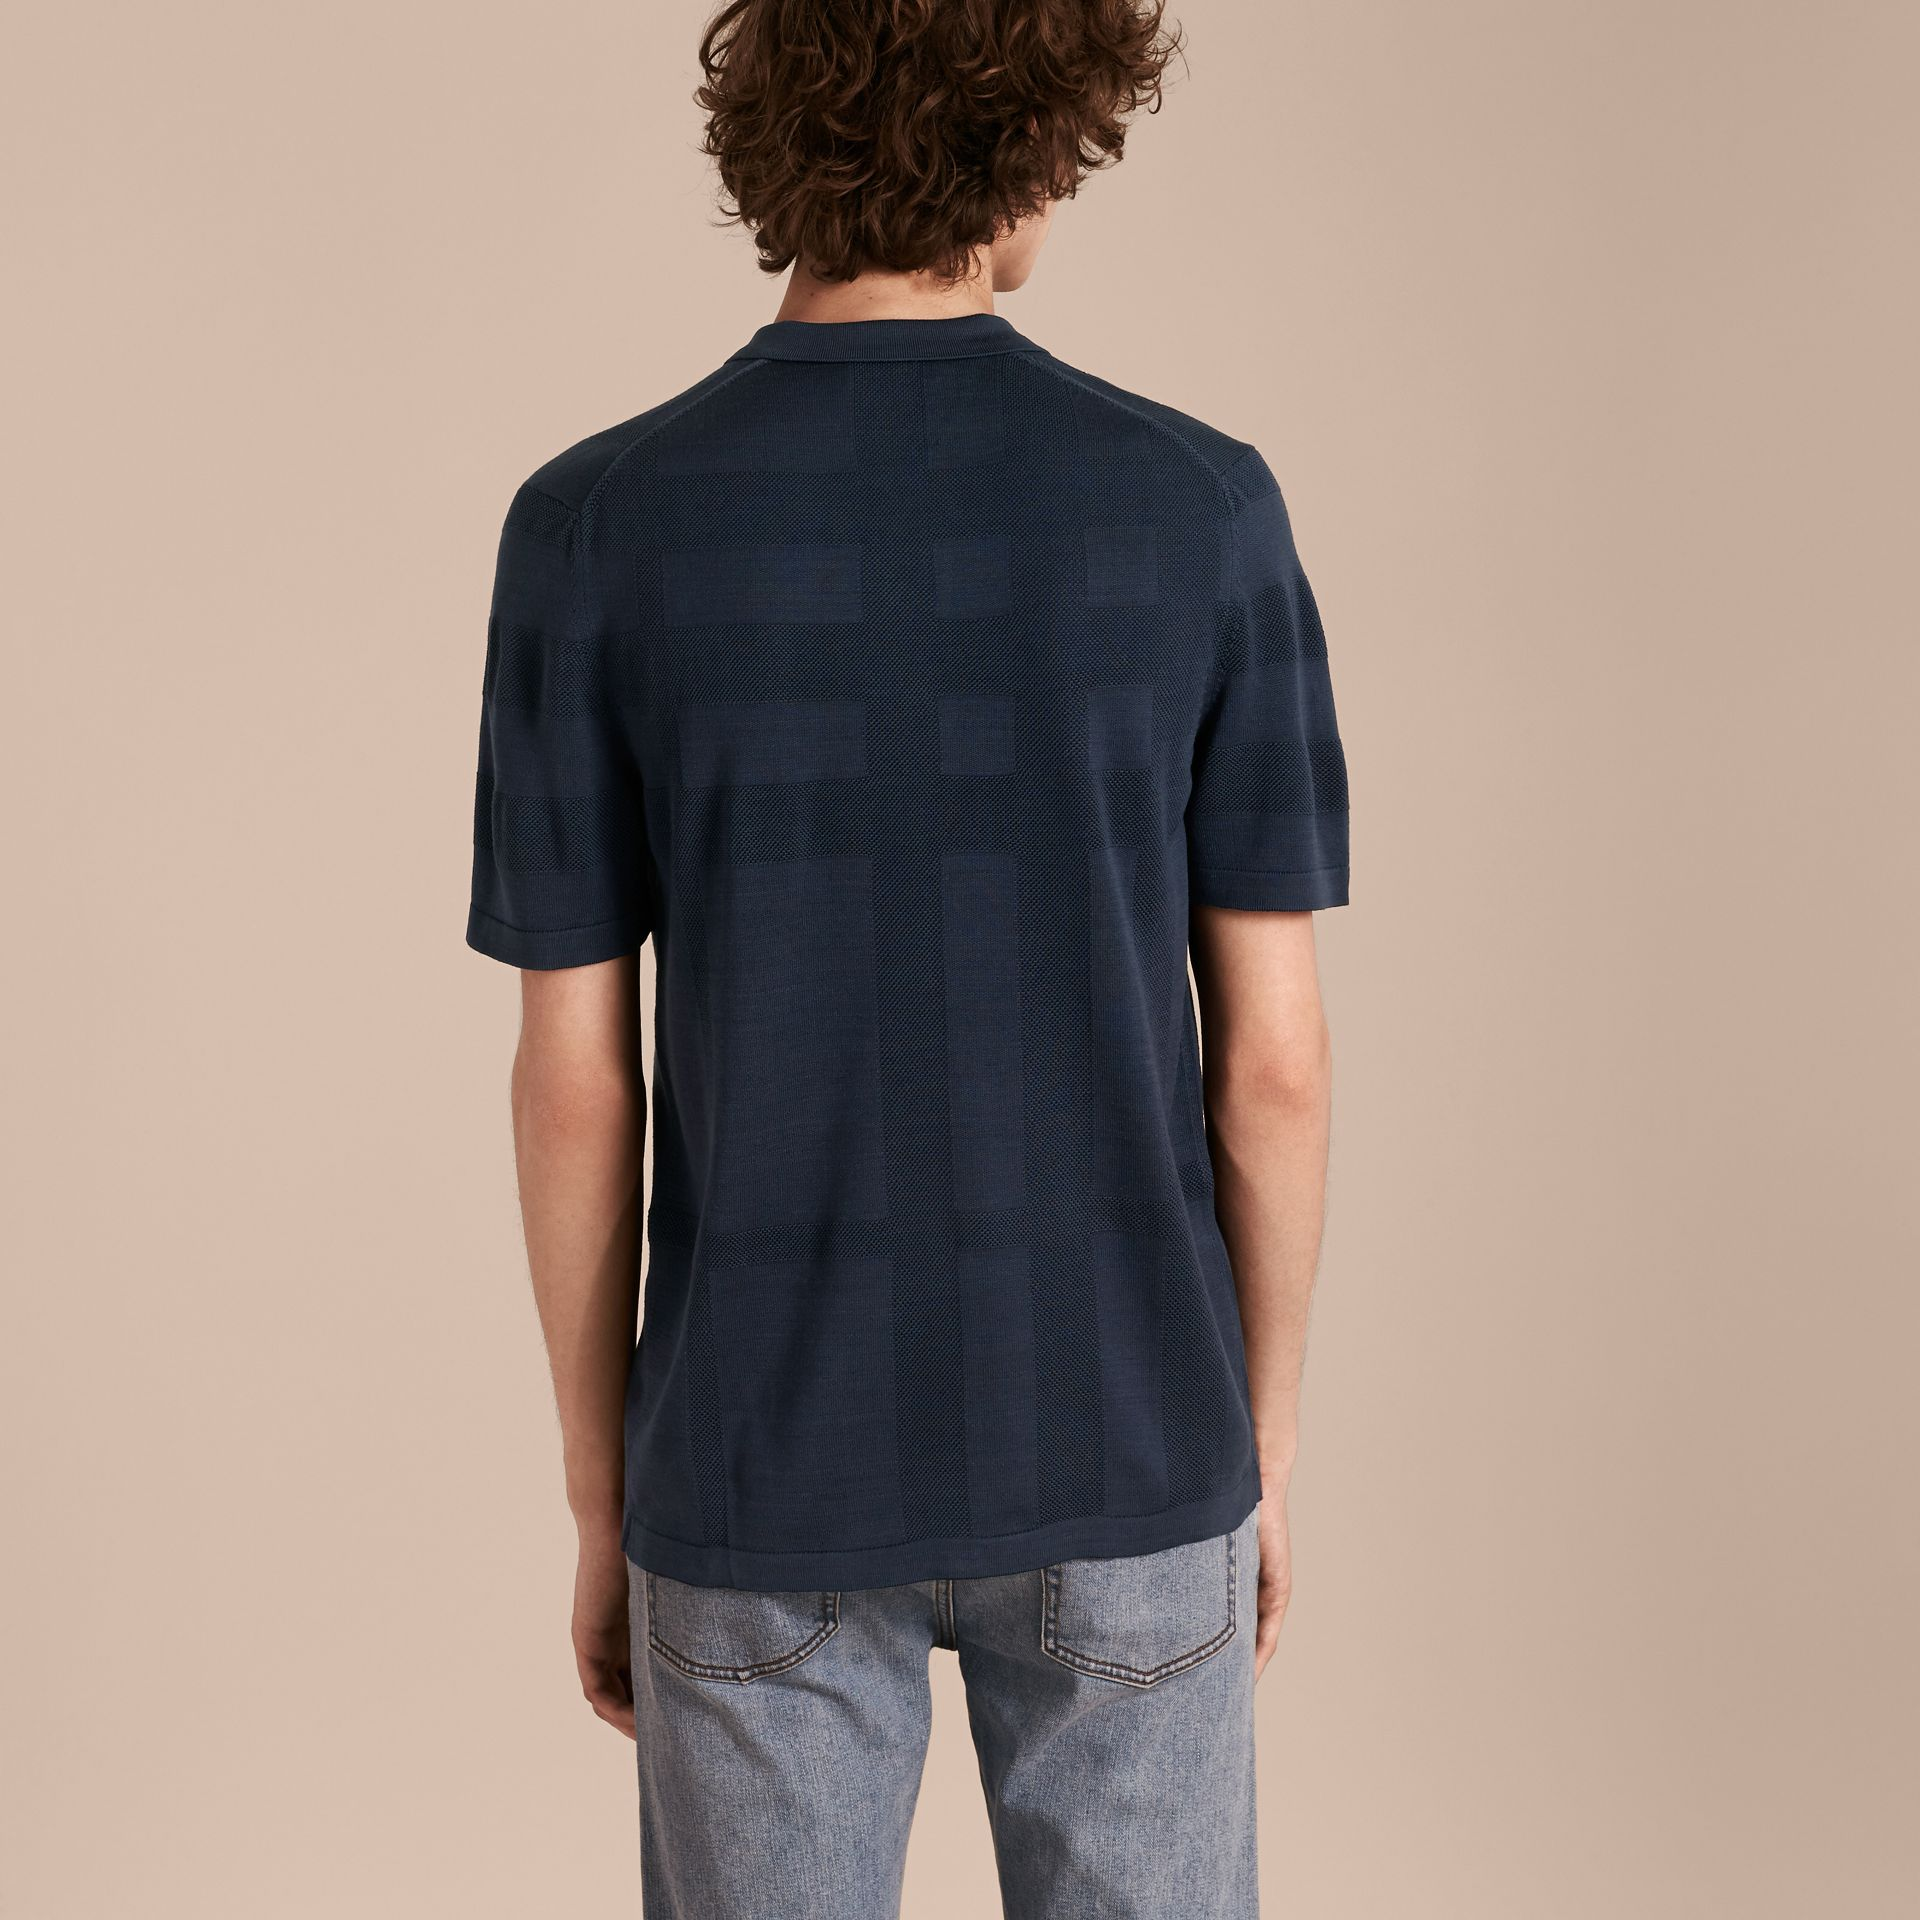 Check Jacquard Piqué Silk Cotton Polo Shirt in Navy - Men | Burberry Singapore - gallery image 3